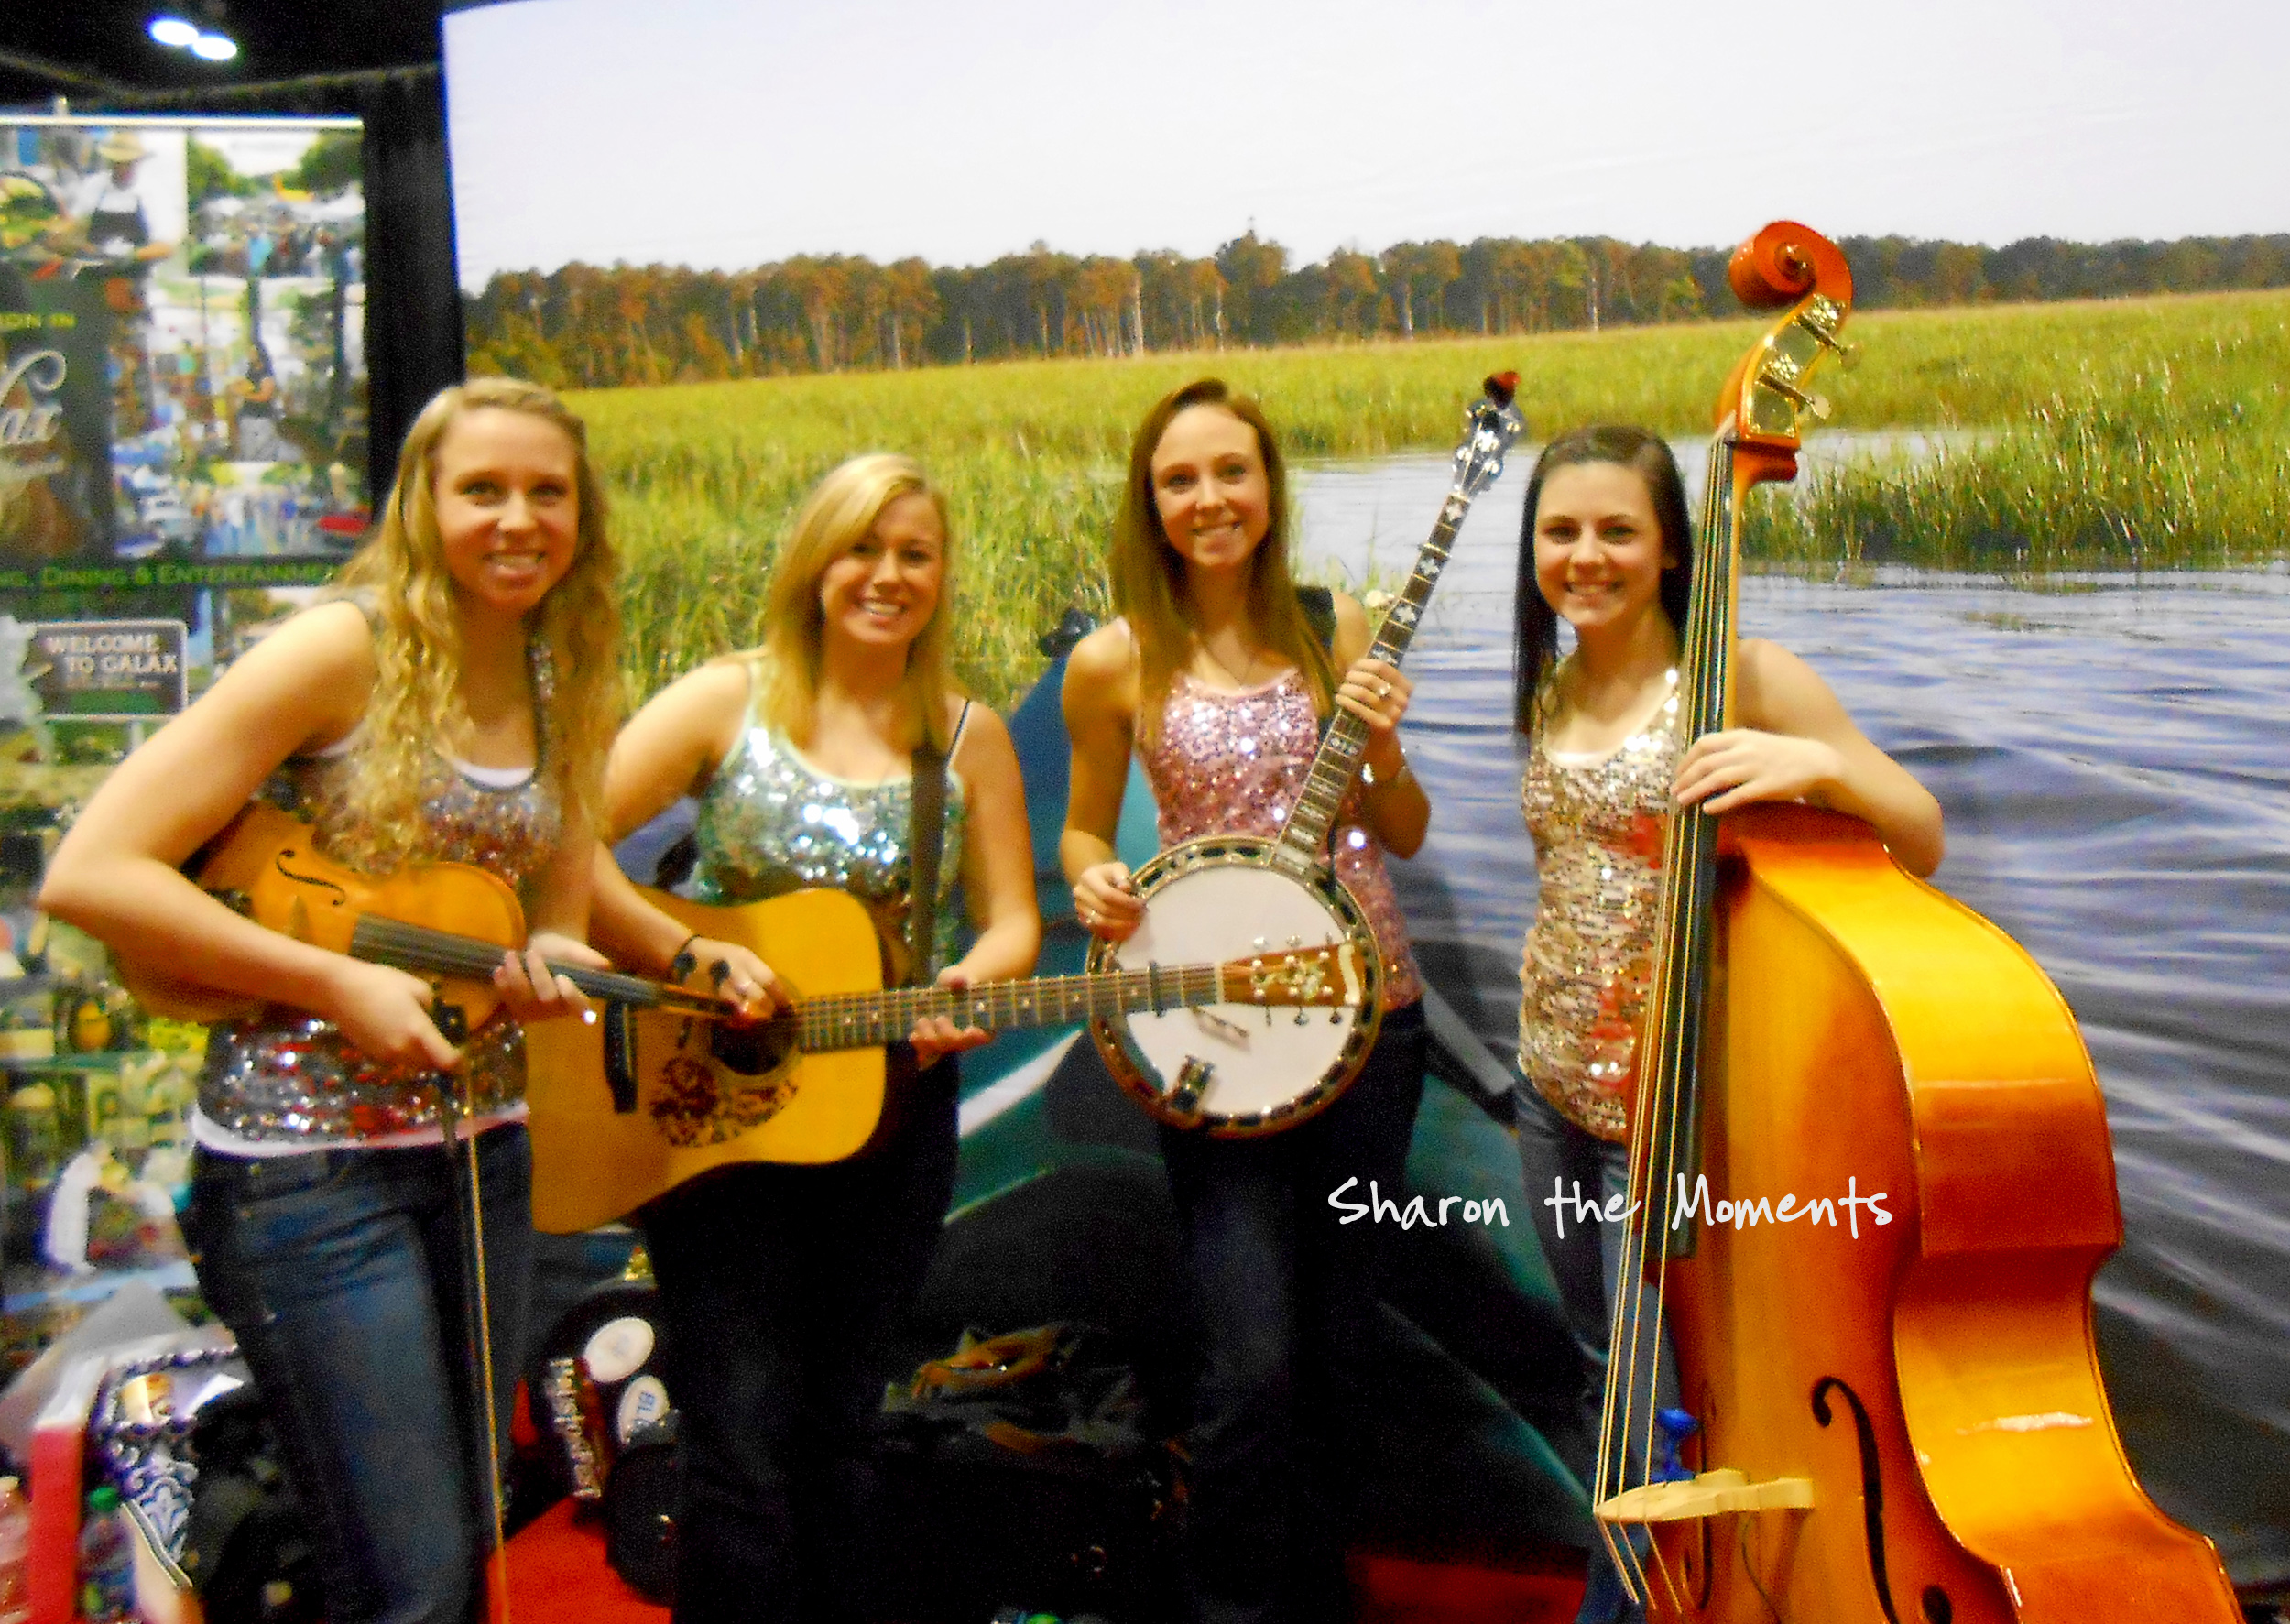 The AAA Vacation & Travel Expo The Loose String Band Galax Virginia|Sharon the Moments blog